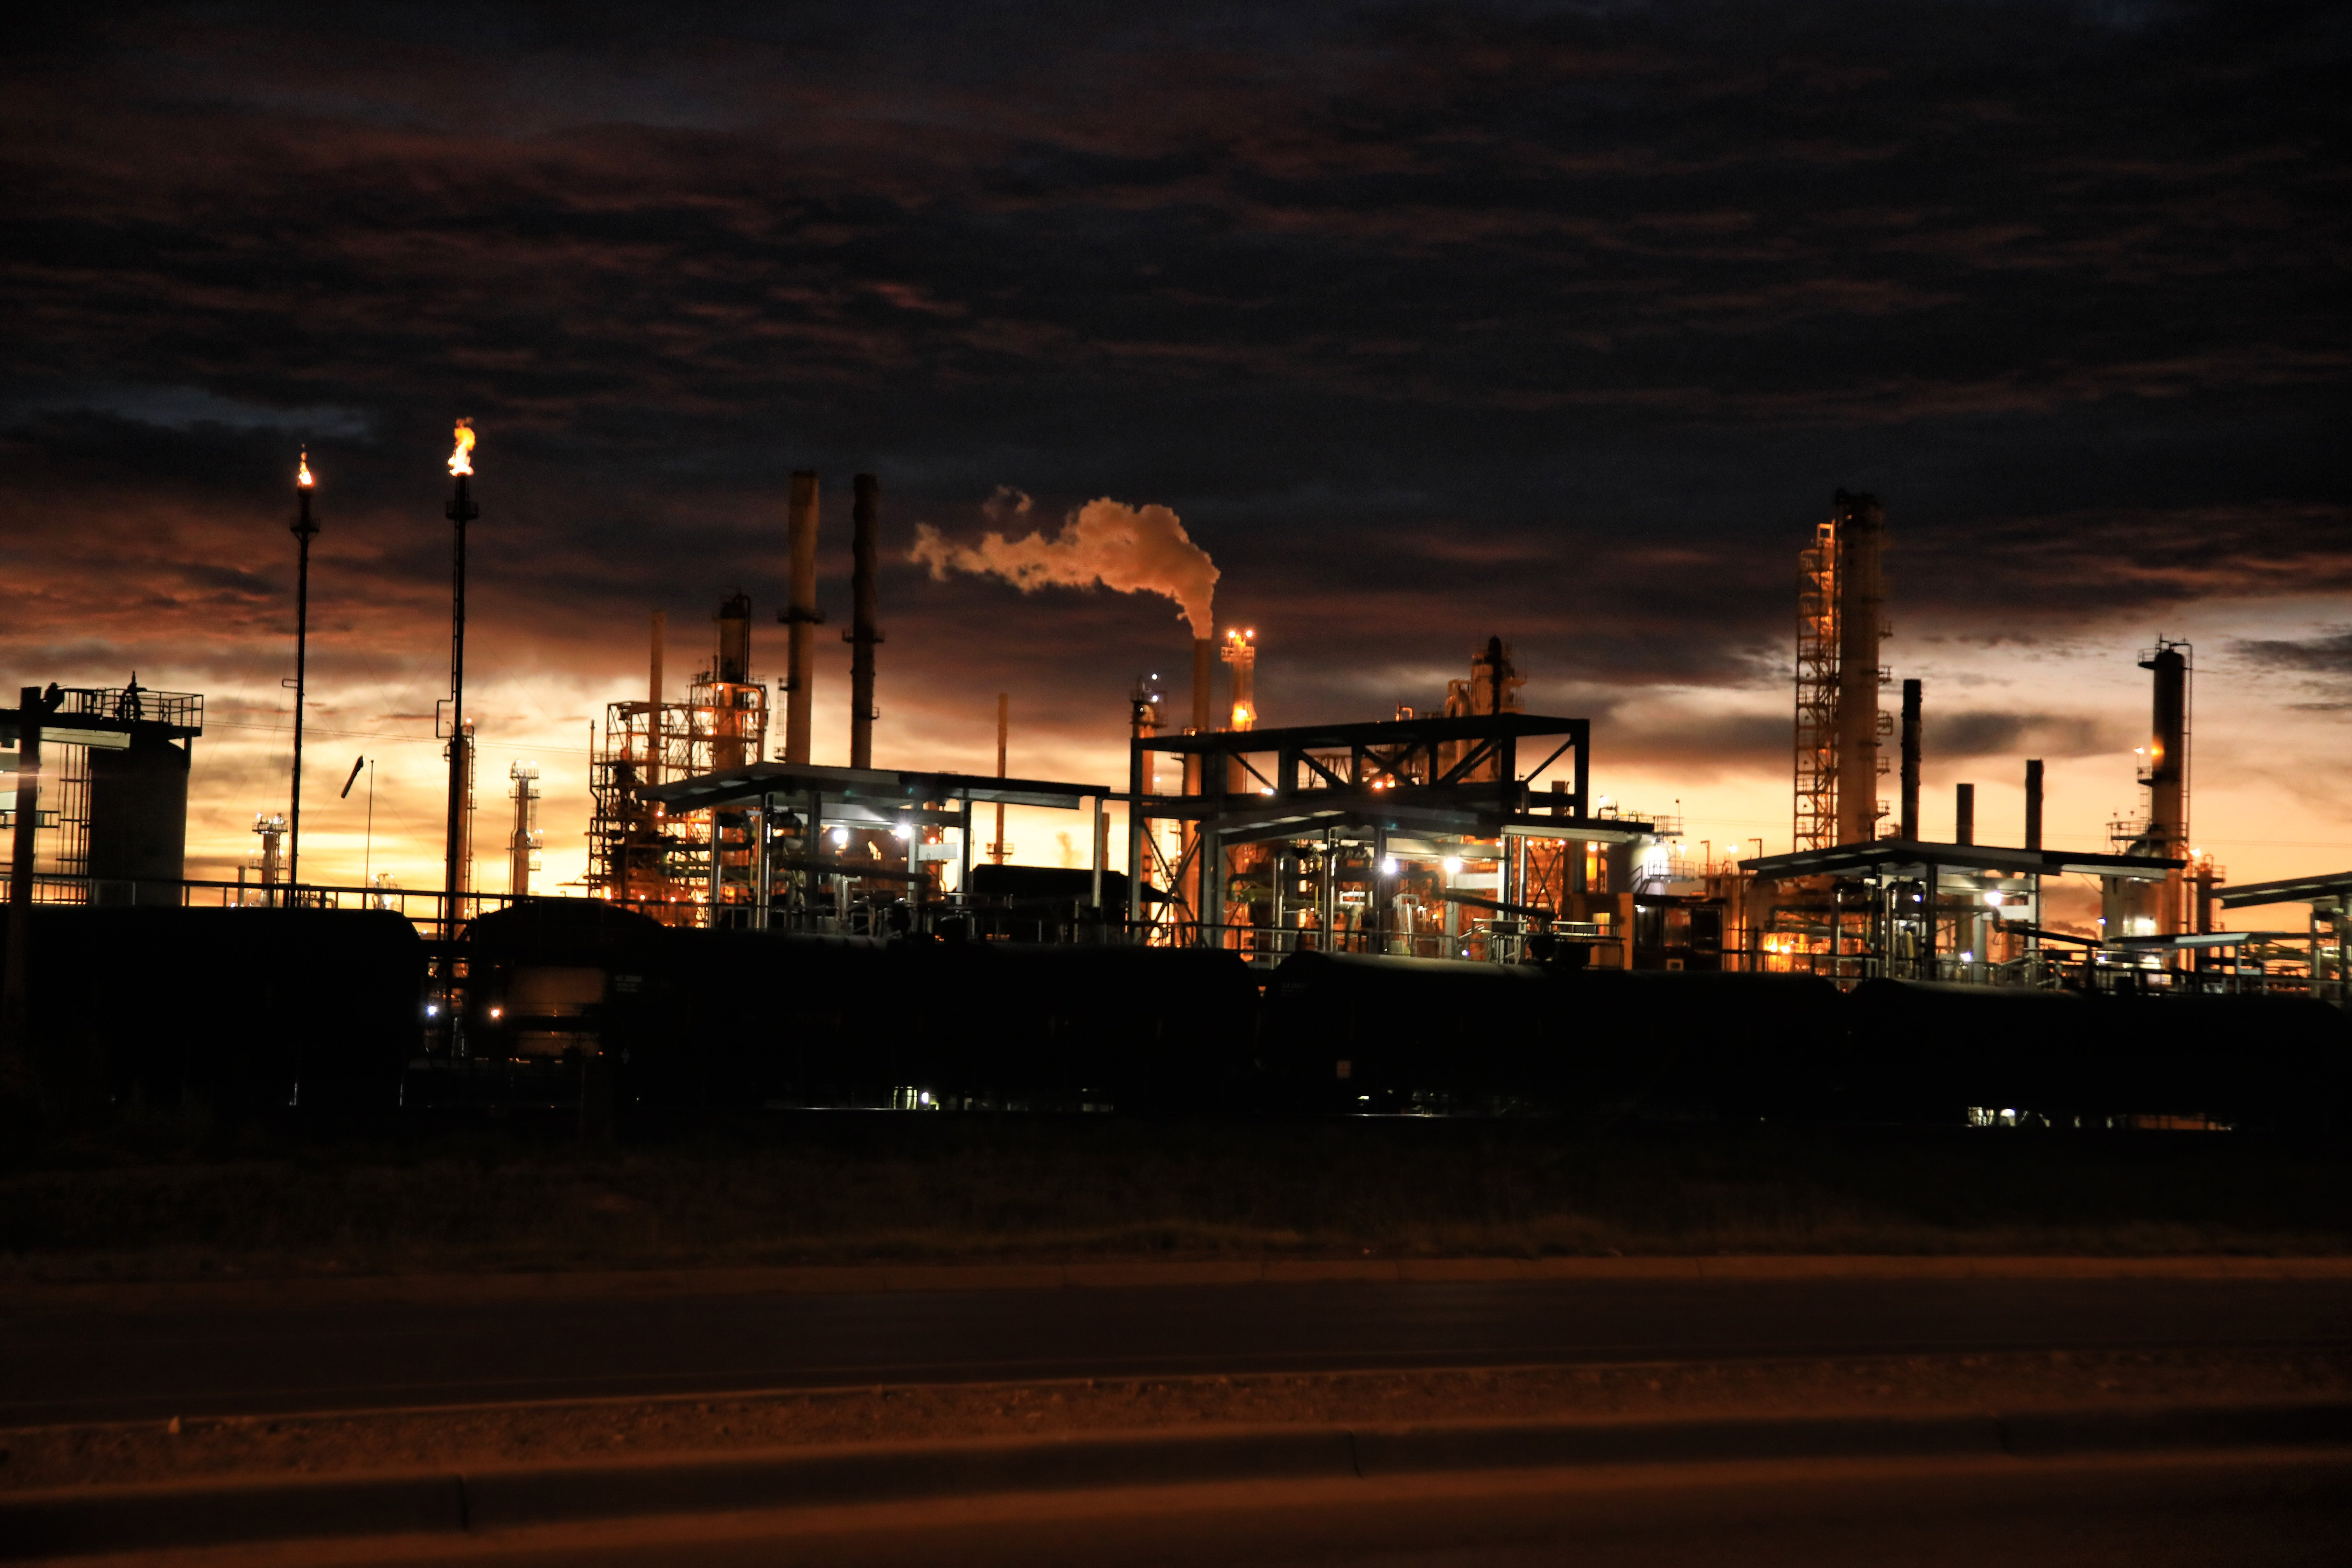 Industrial Process: Refining